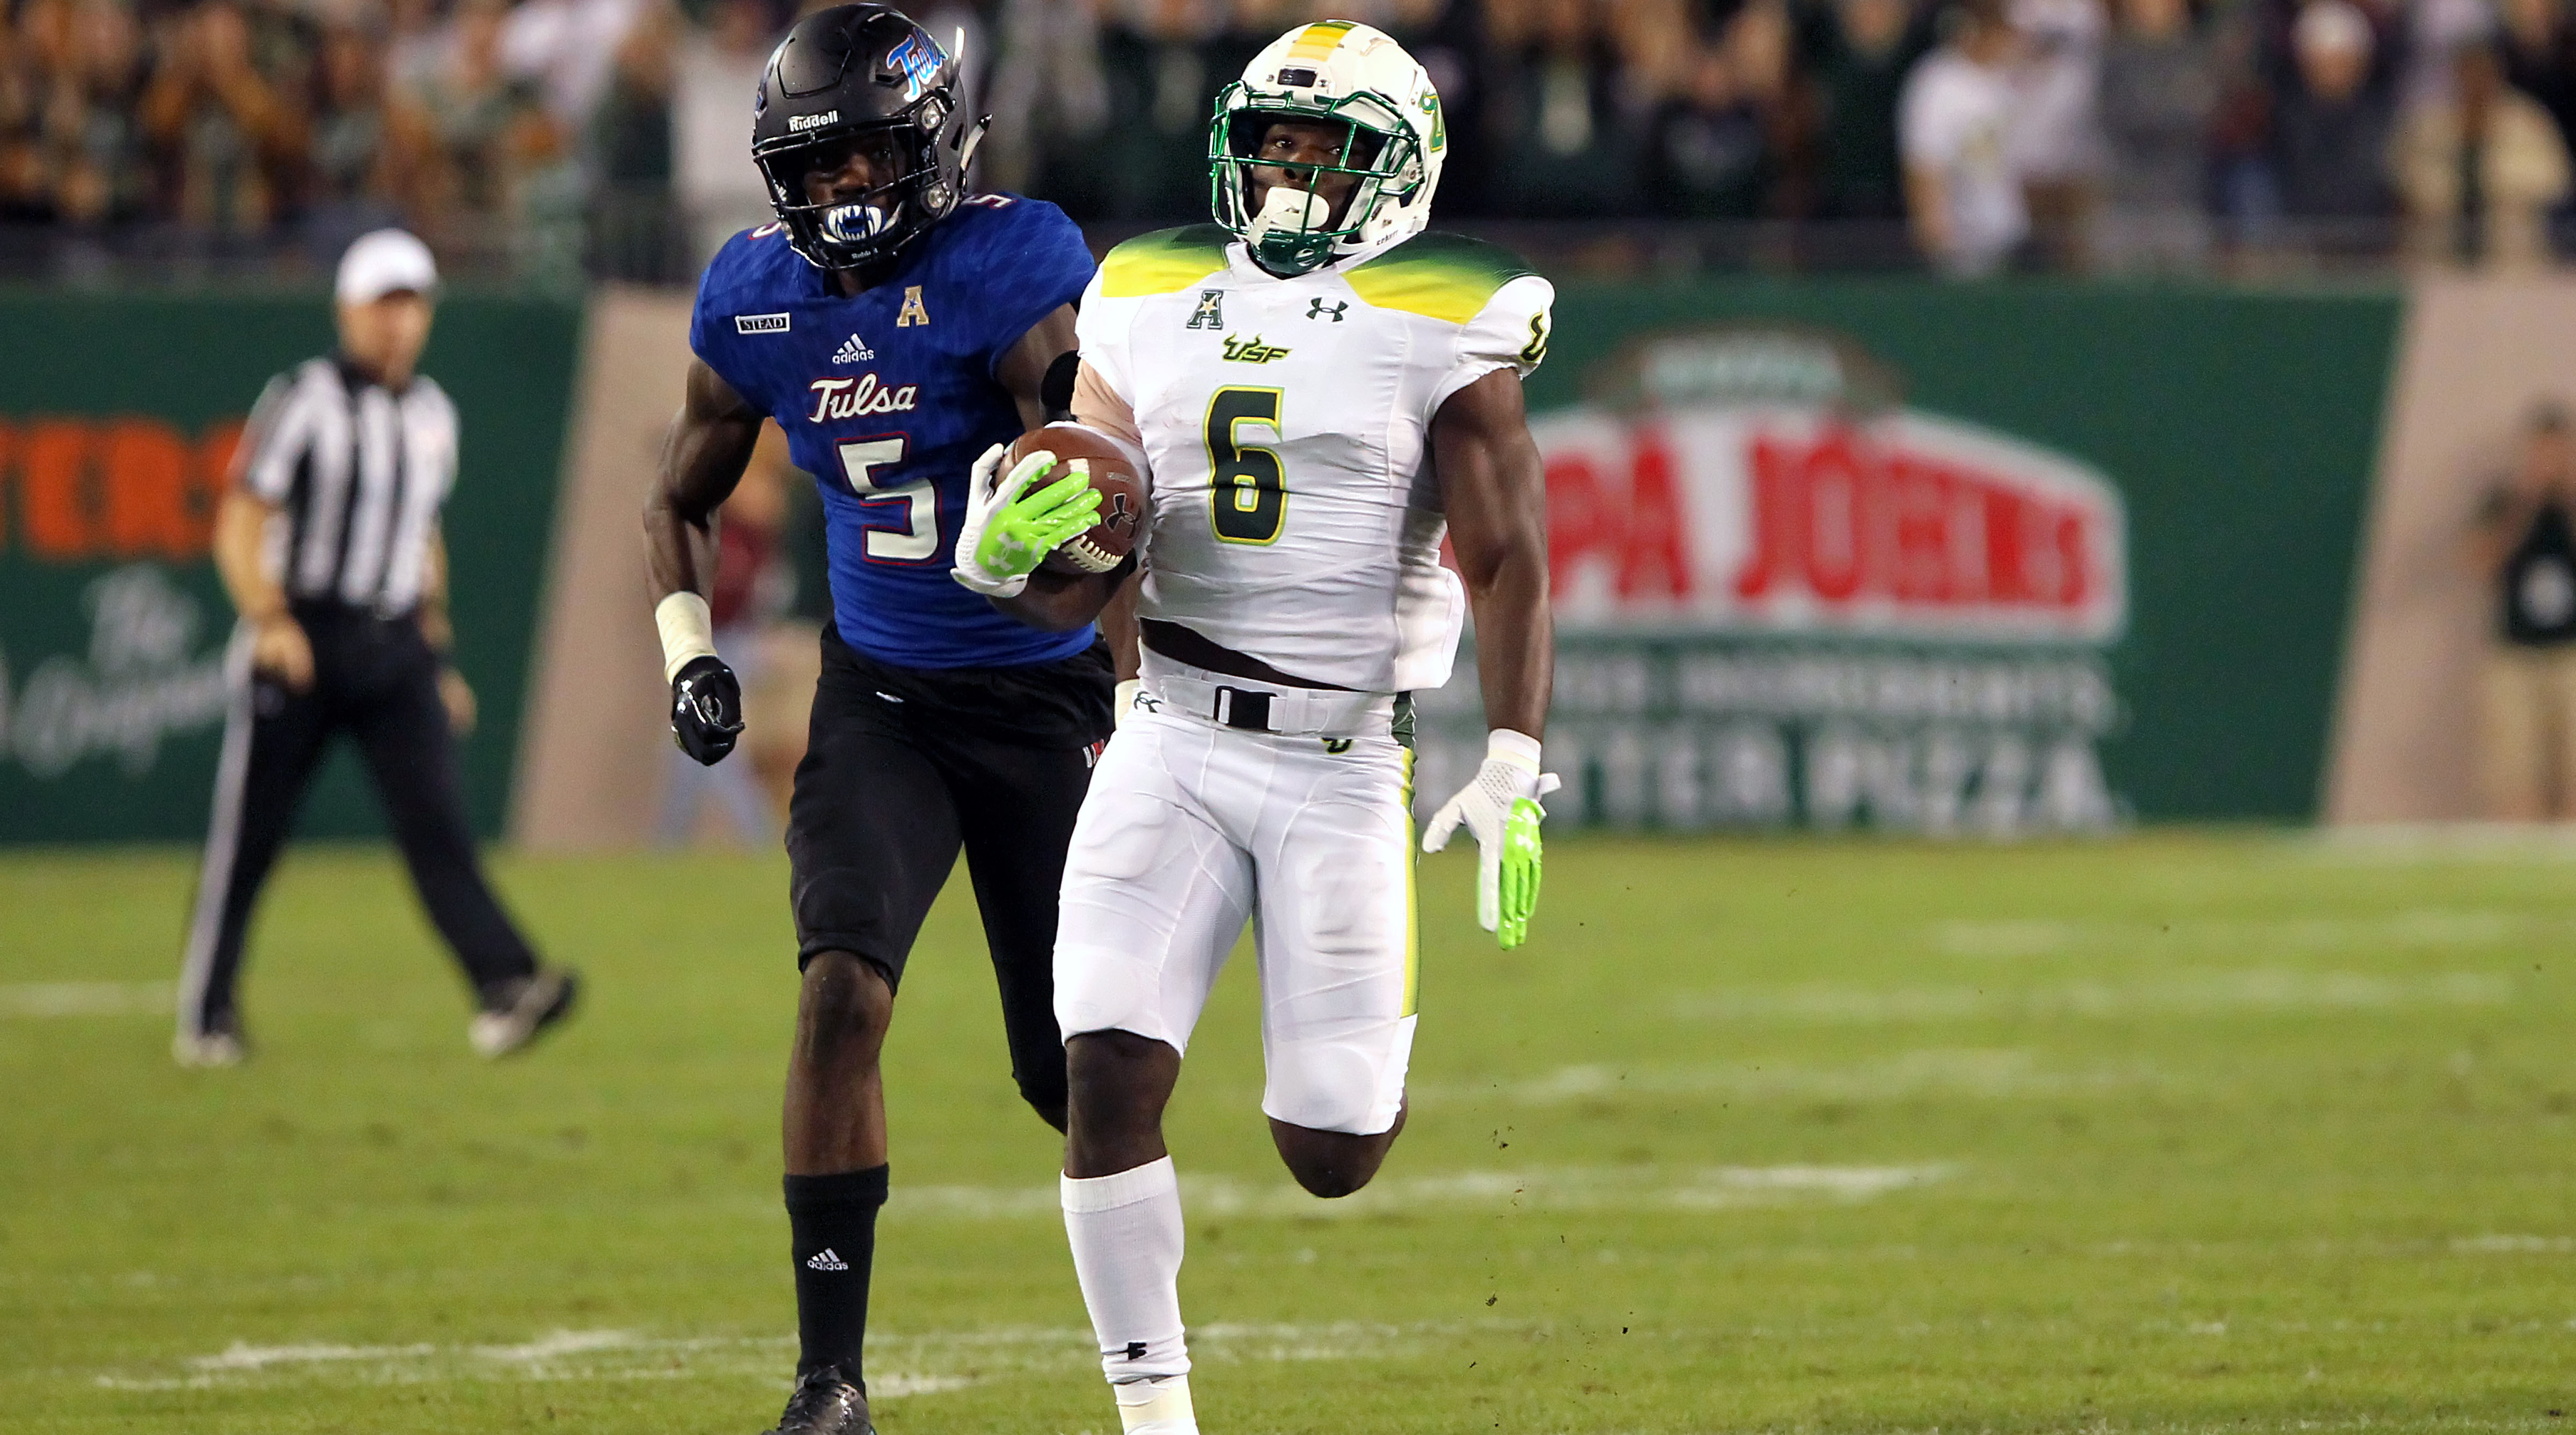 How to Watch South Florida vs. Tulsa: Live Stream, TV Channel, Time